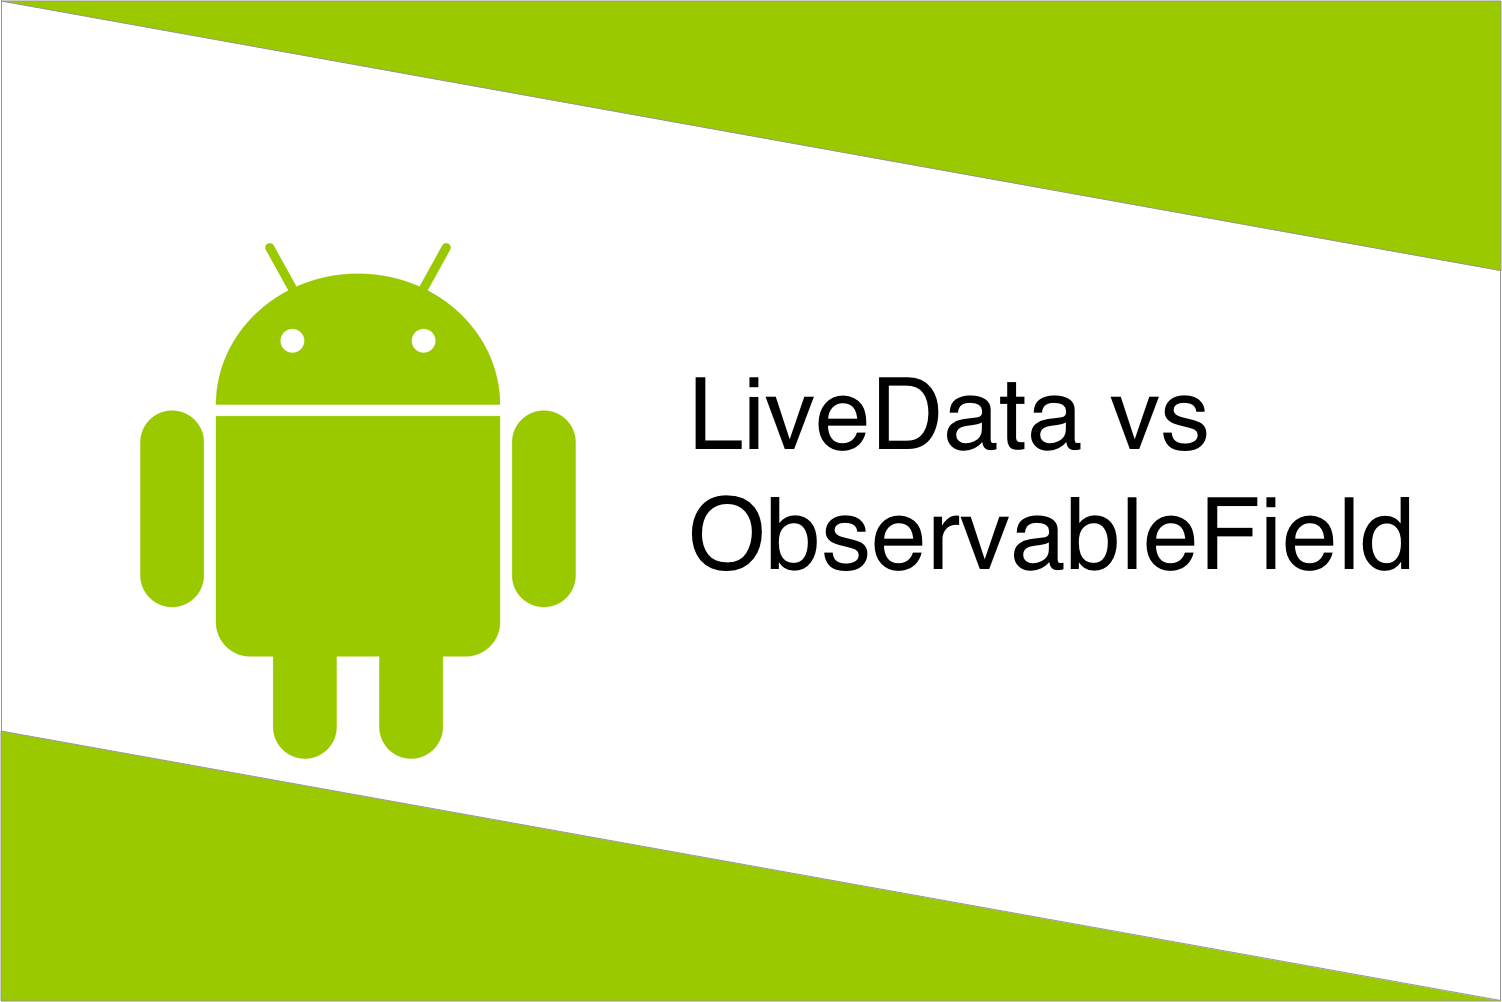 LiveData vs ObservableField in Android